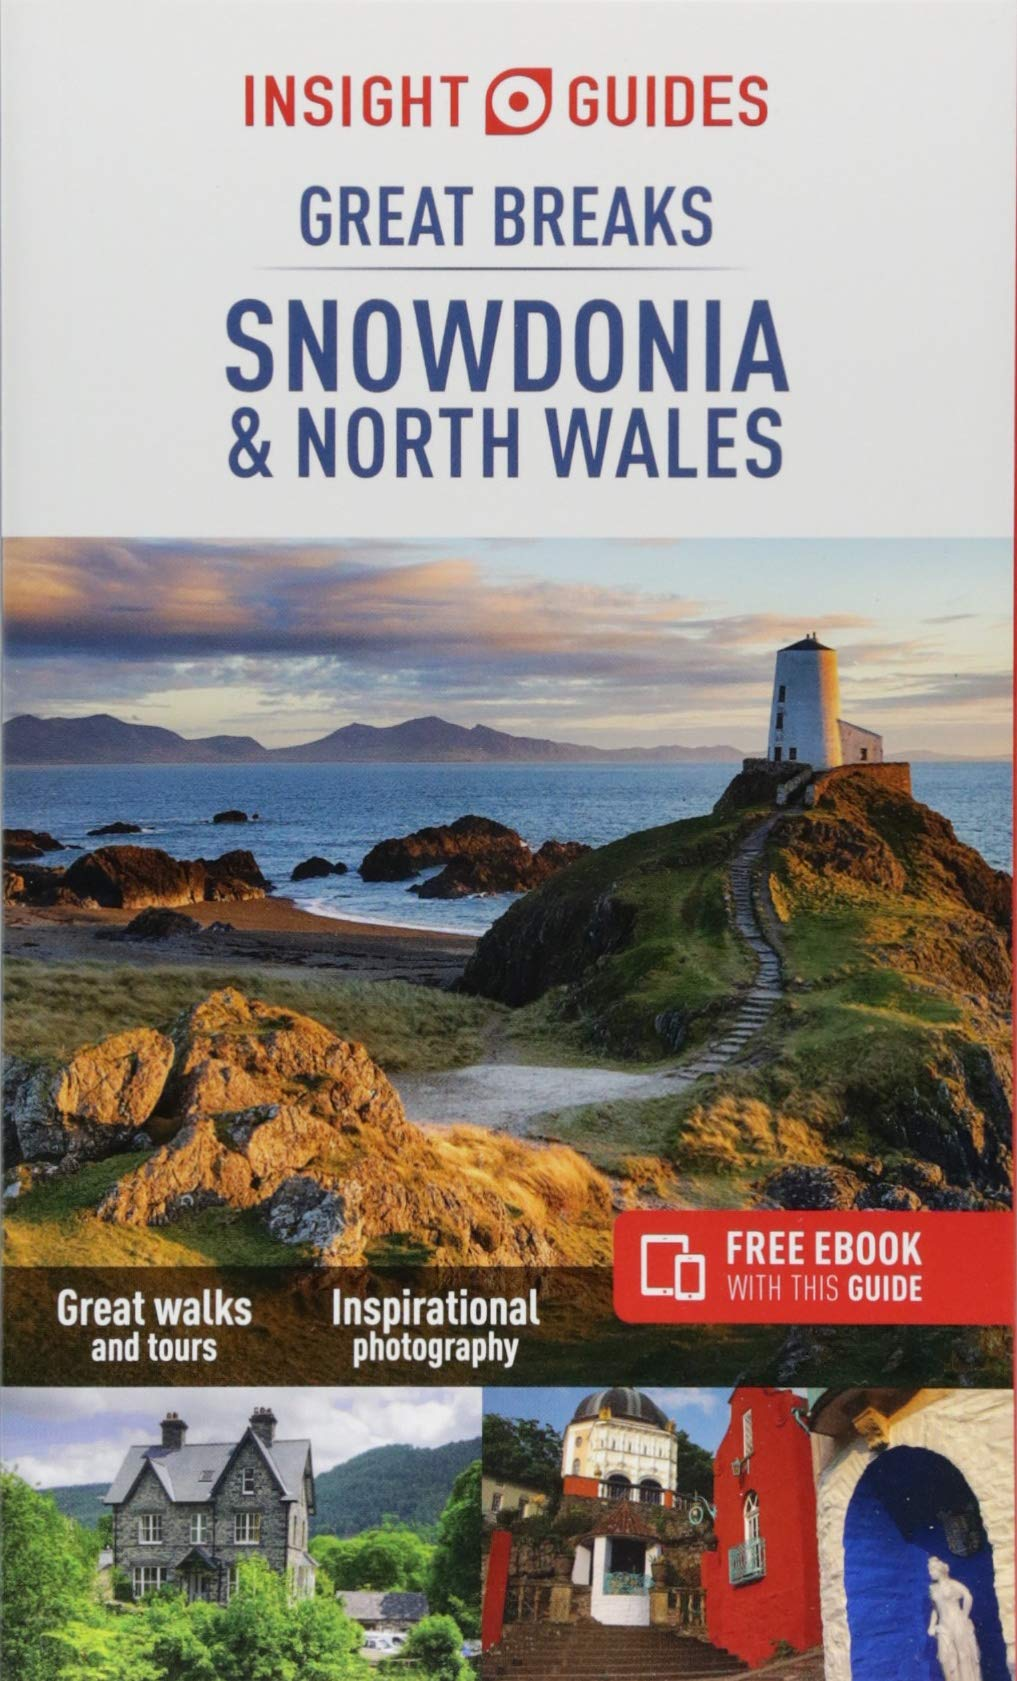 Insight Guides: Great Breaks Snowdonia & North Wales - Snowdonia Guide (Insight Great Breaks)